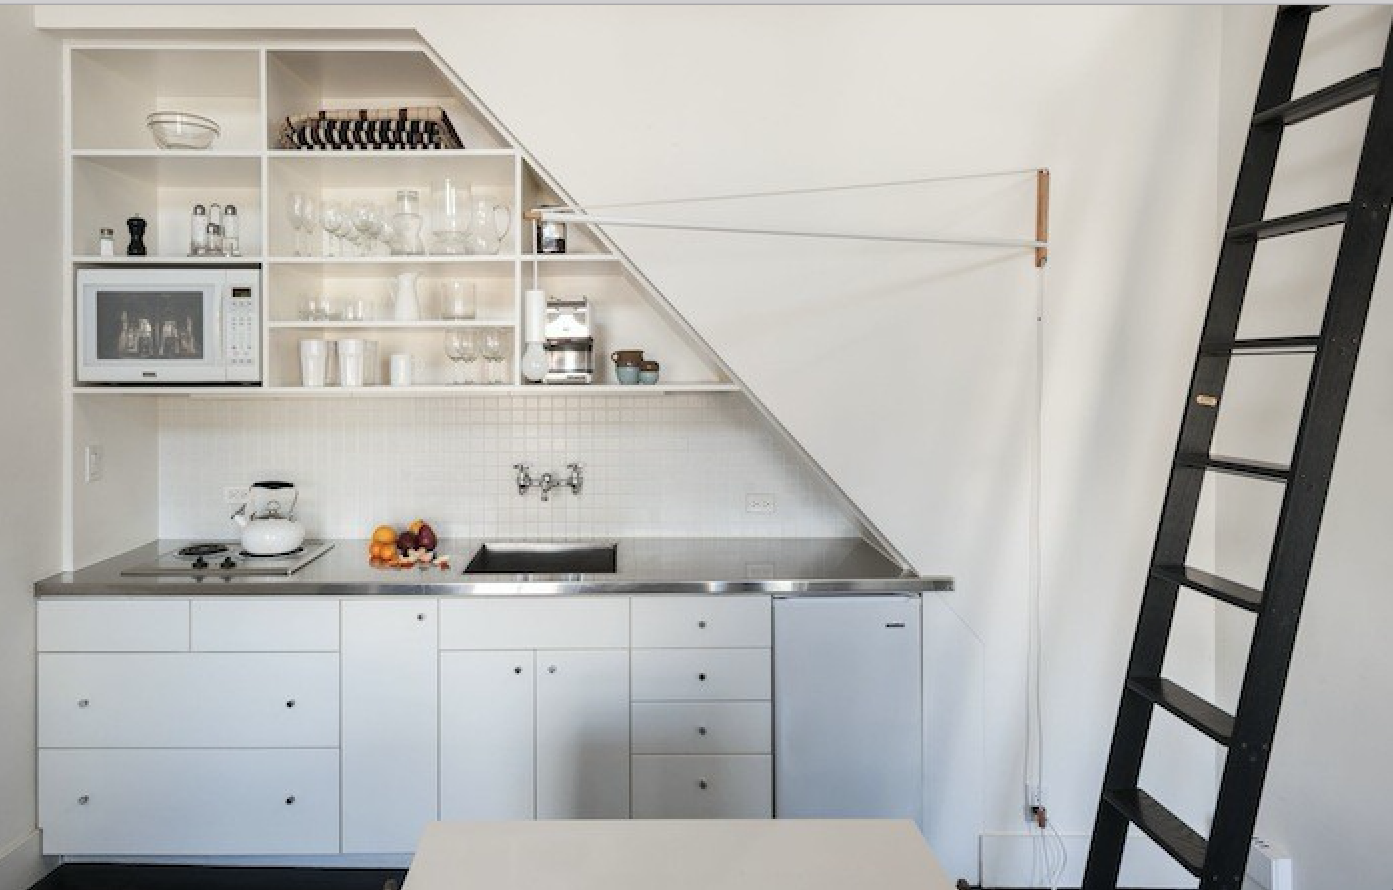 remodeling 101: stainless steel countertops - remodelista